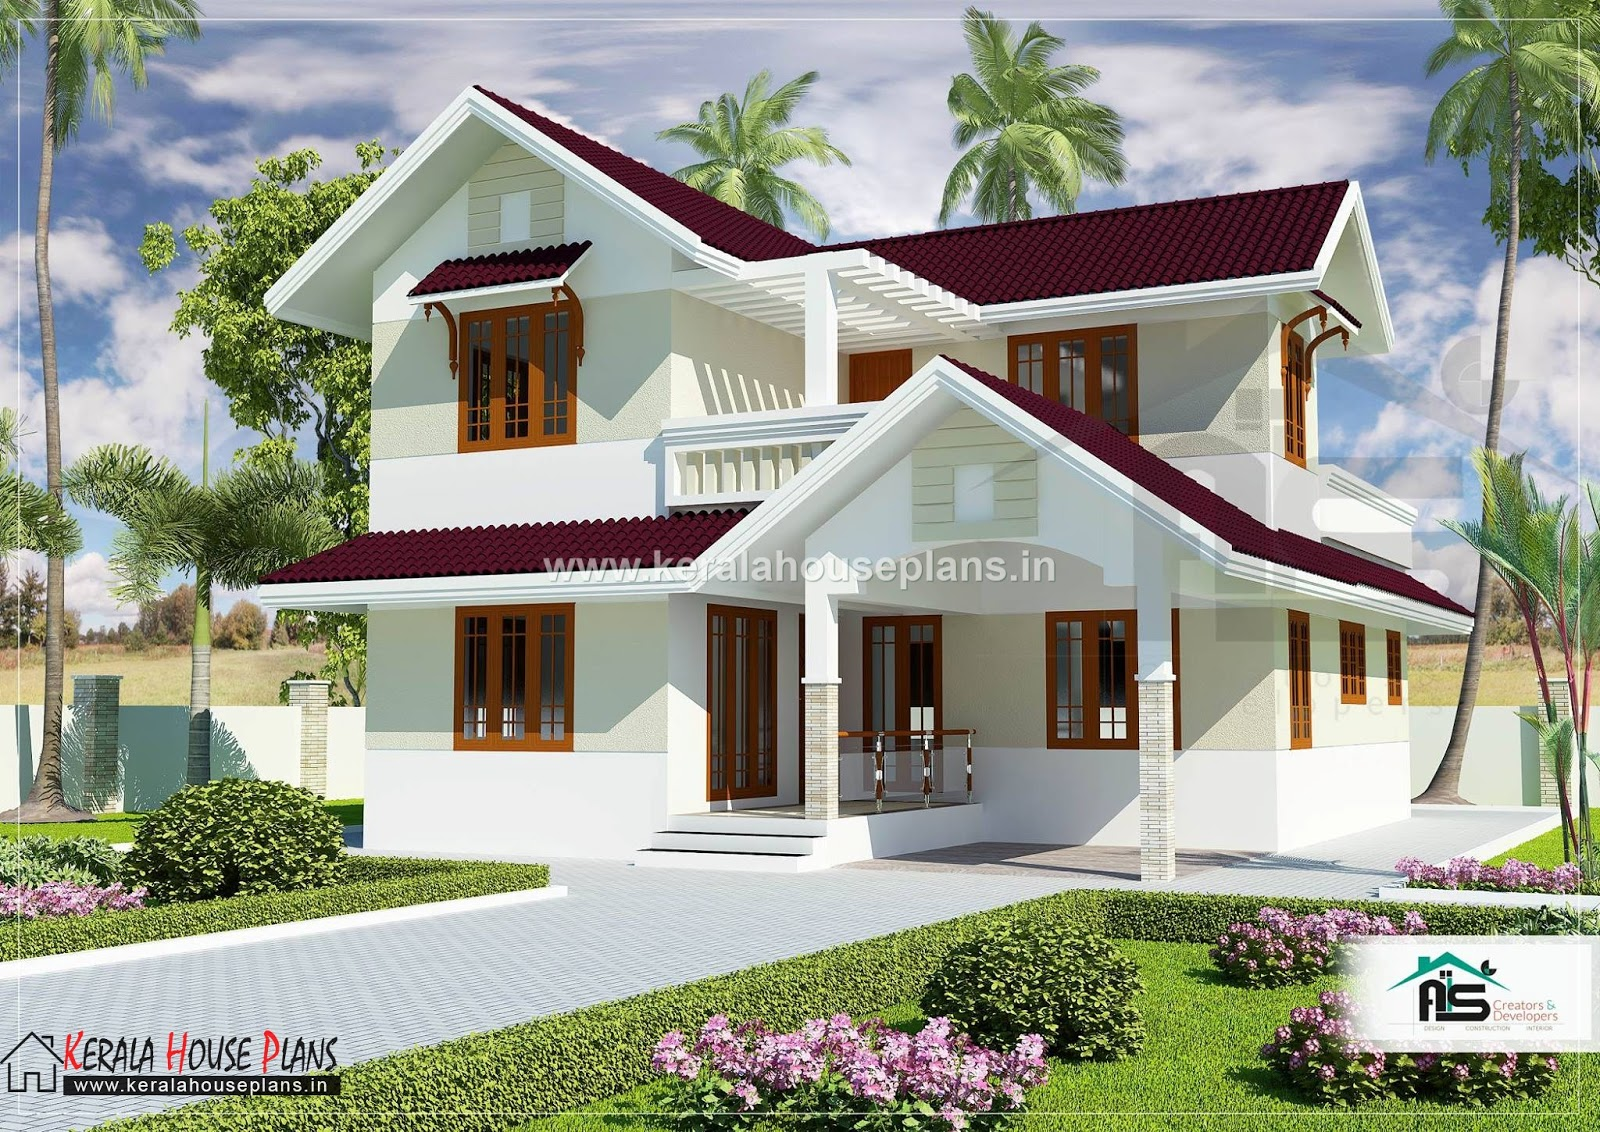 Kerala model house plans with elevation 1829 sqft kerala for Home models in kerala